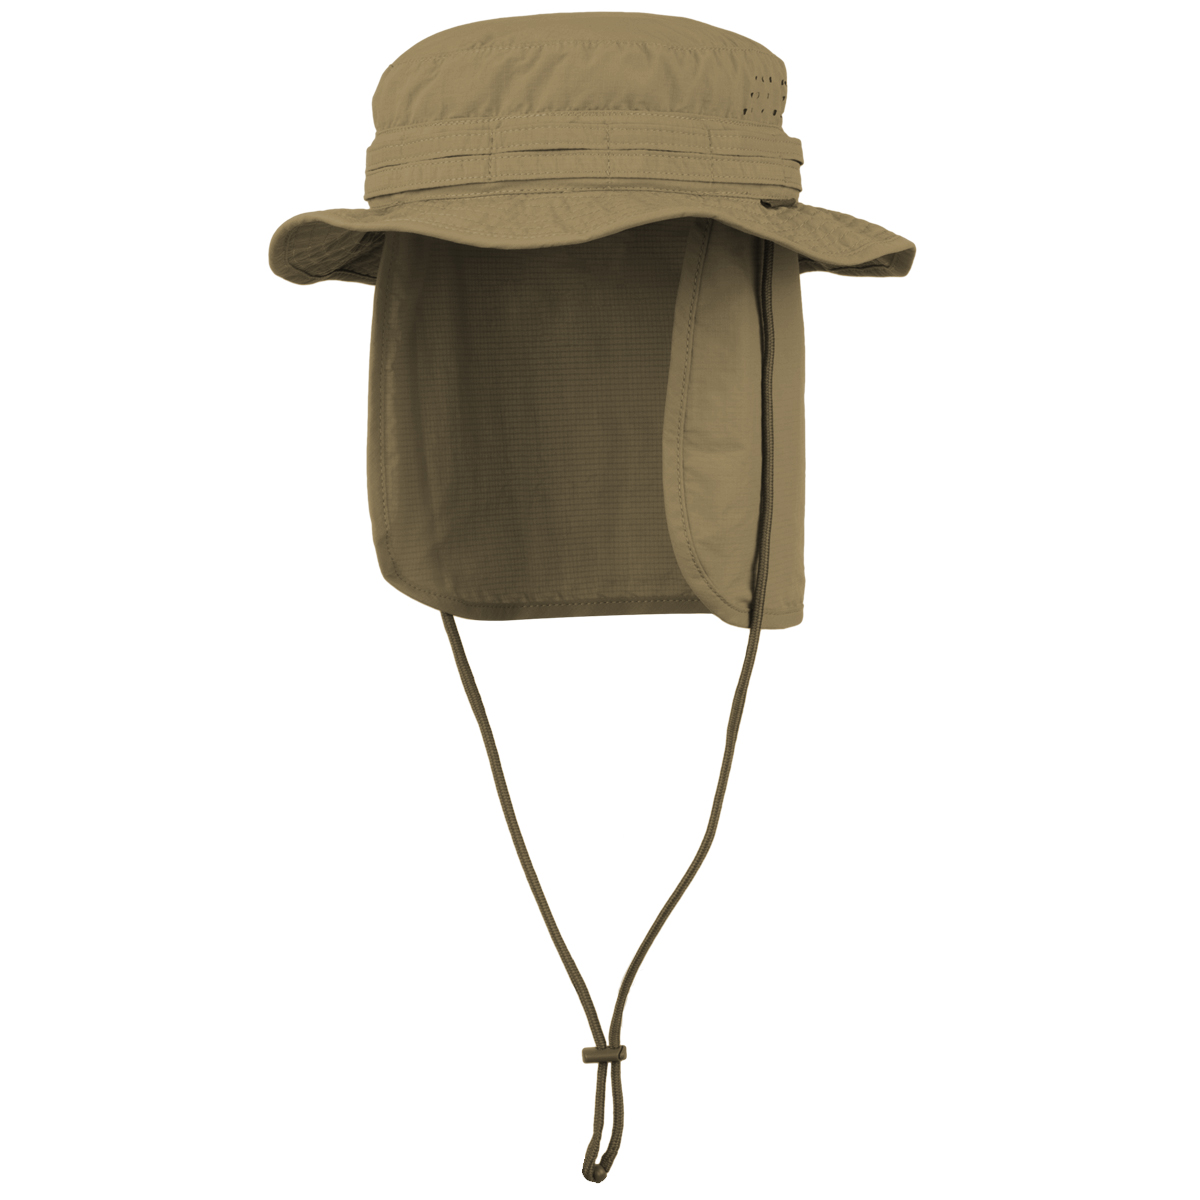 Details about Pentagon Kalahari Hat Tactical Combat Sun Outdoor Head Cover  Vent Boonie Coyote 694f196a535